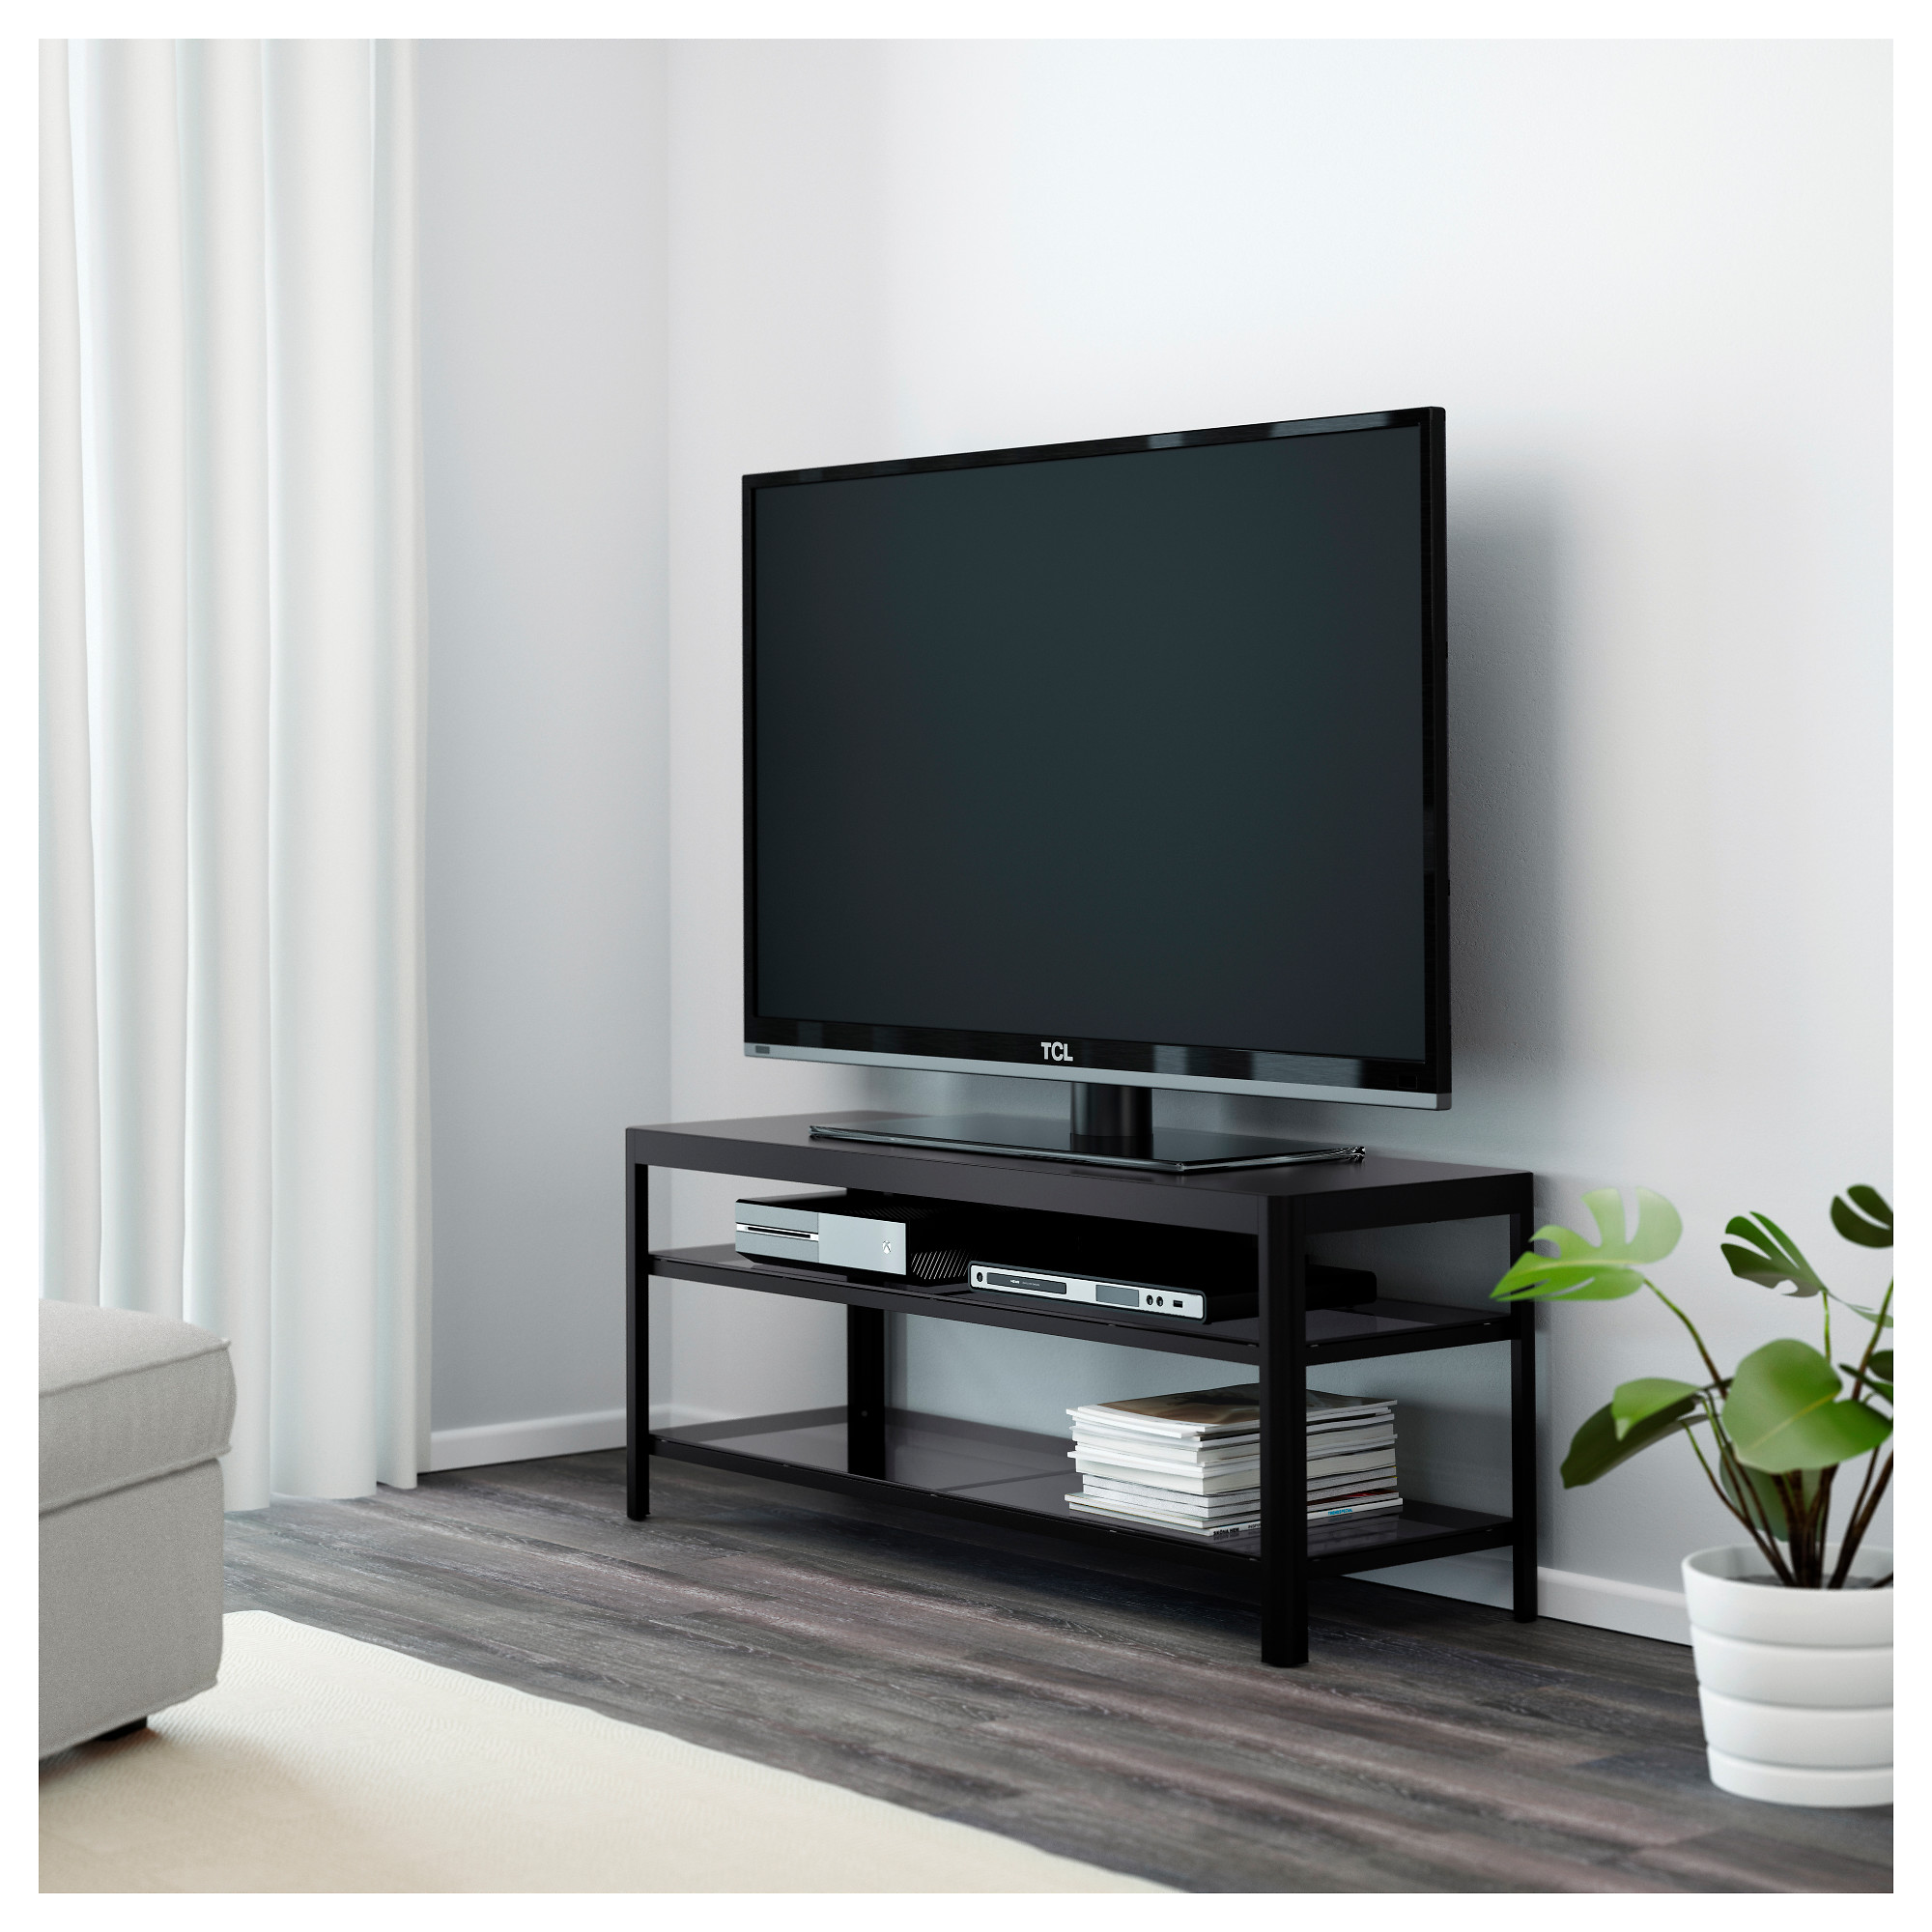 ikea tv furniture home design ideas and pictures. Black Bedroom Furniture Sets. Home Design Ideas